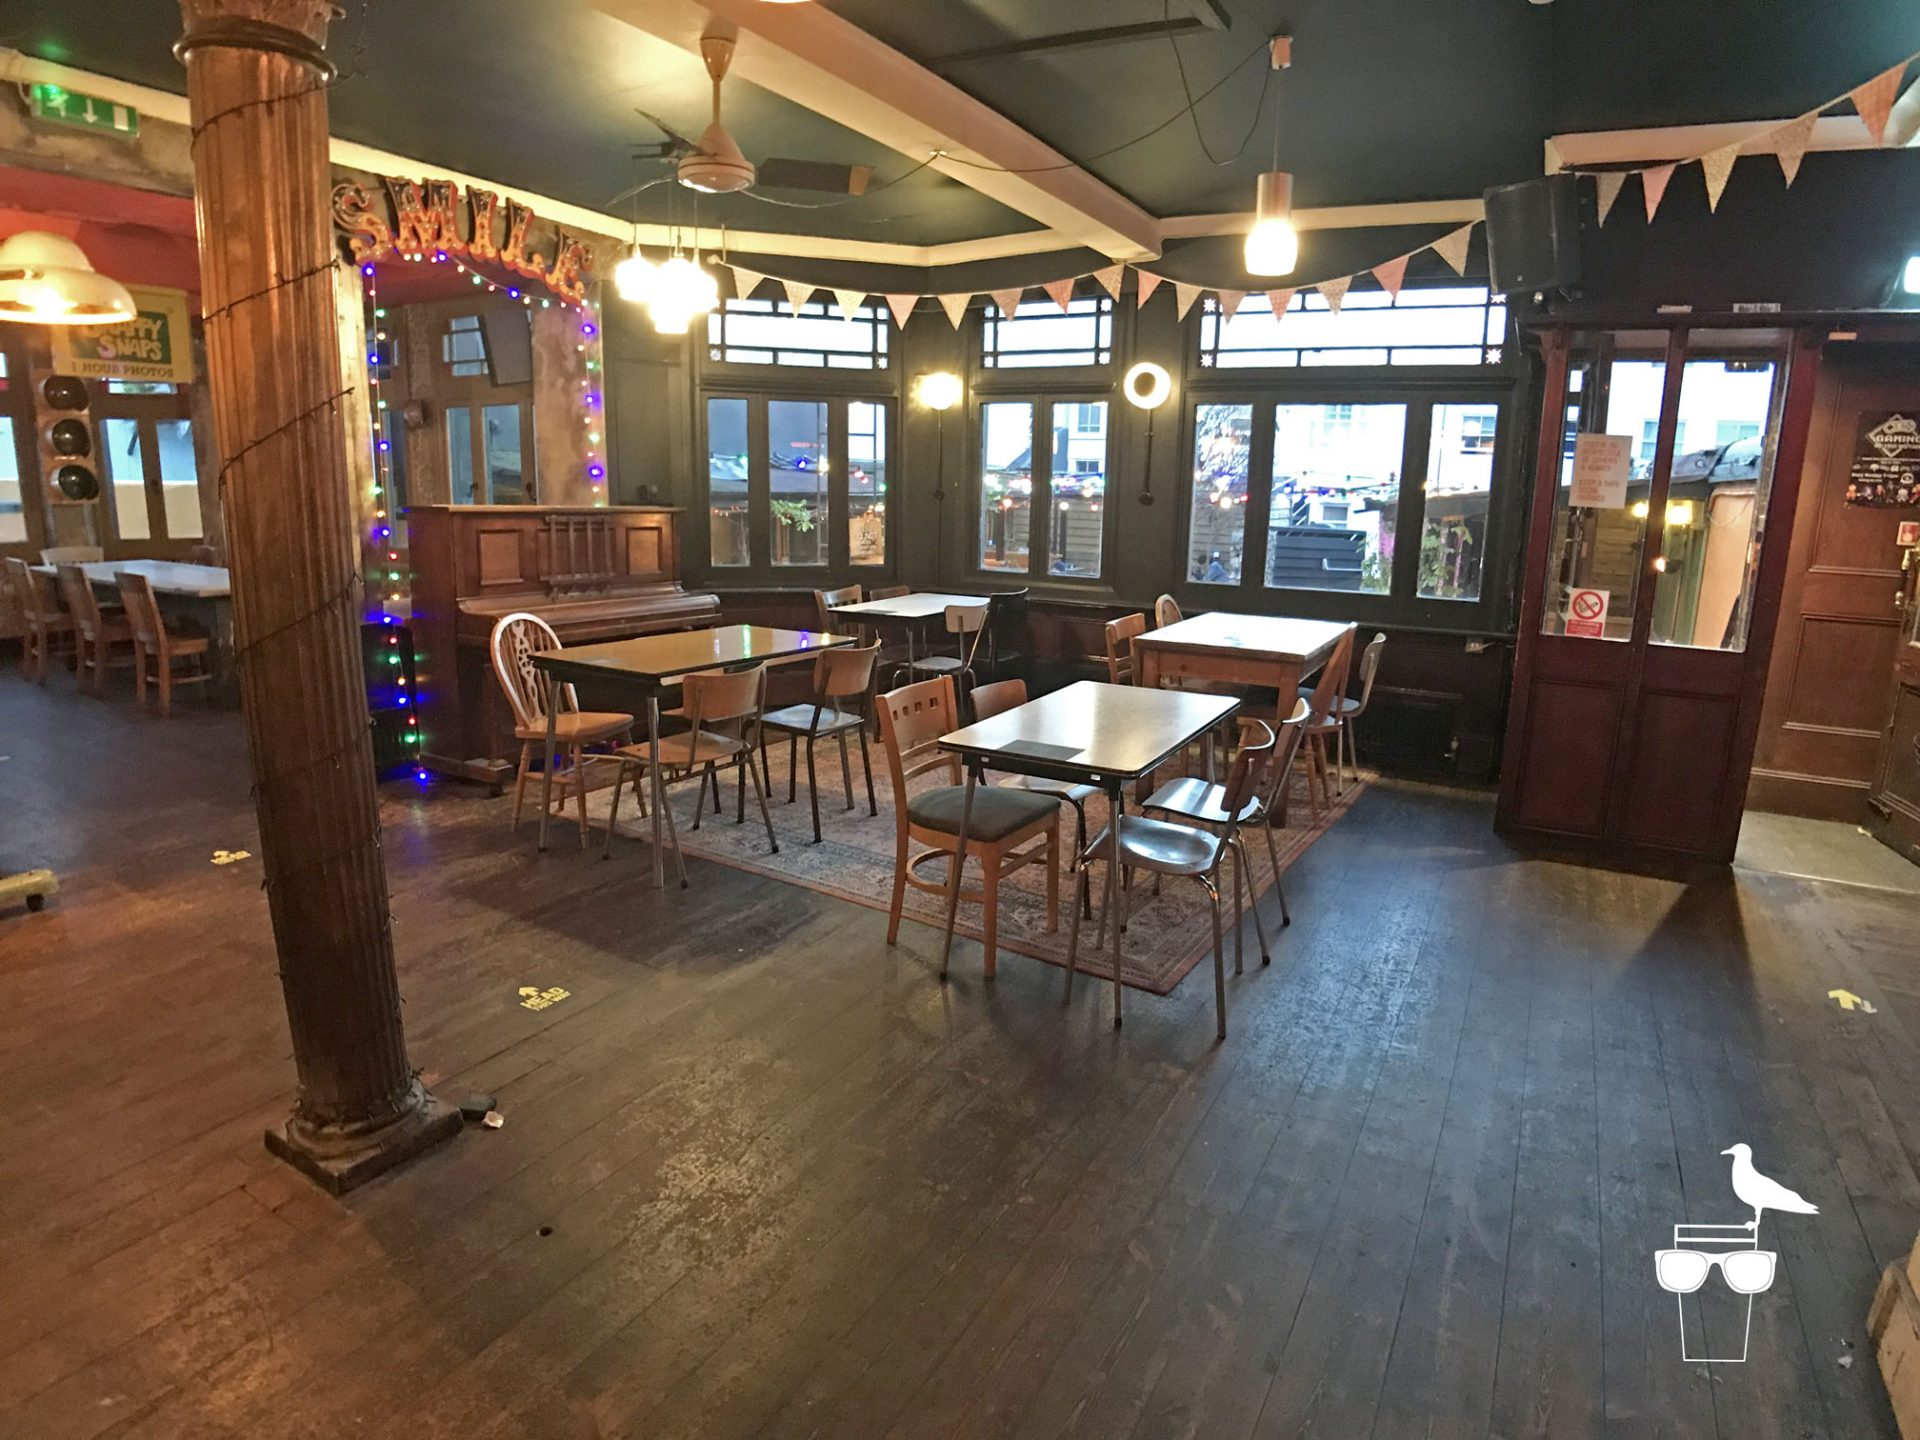 sidewinder-brighton-inside-wide-view-of-pub-2